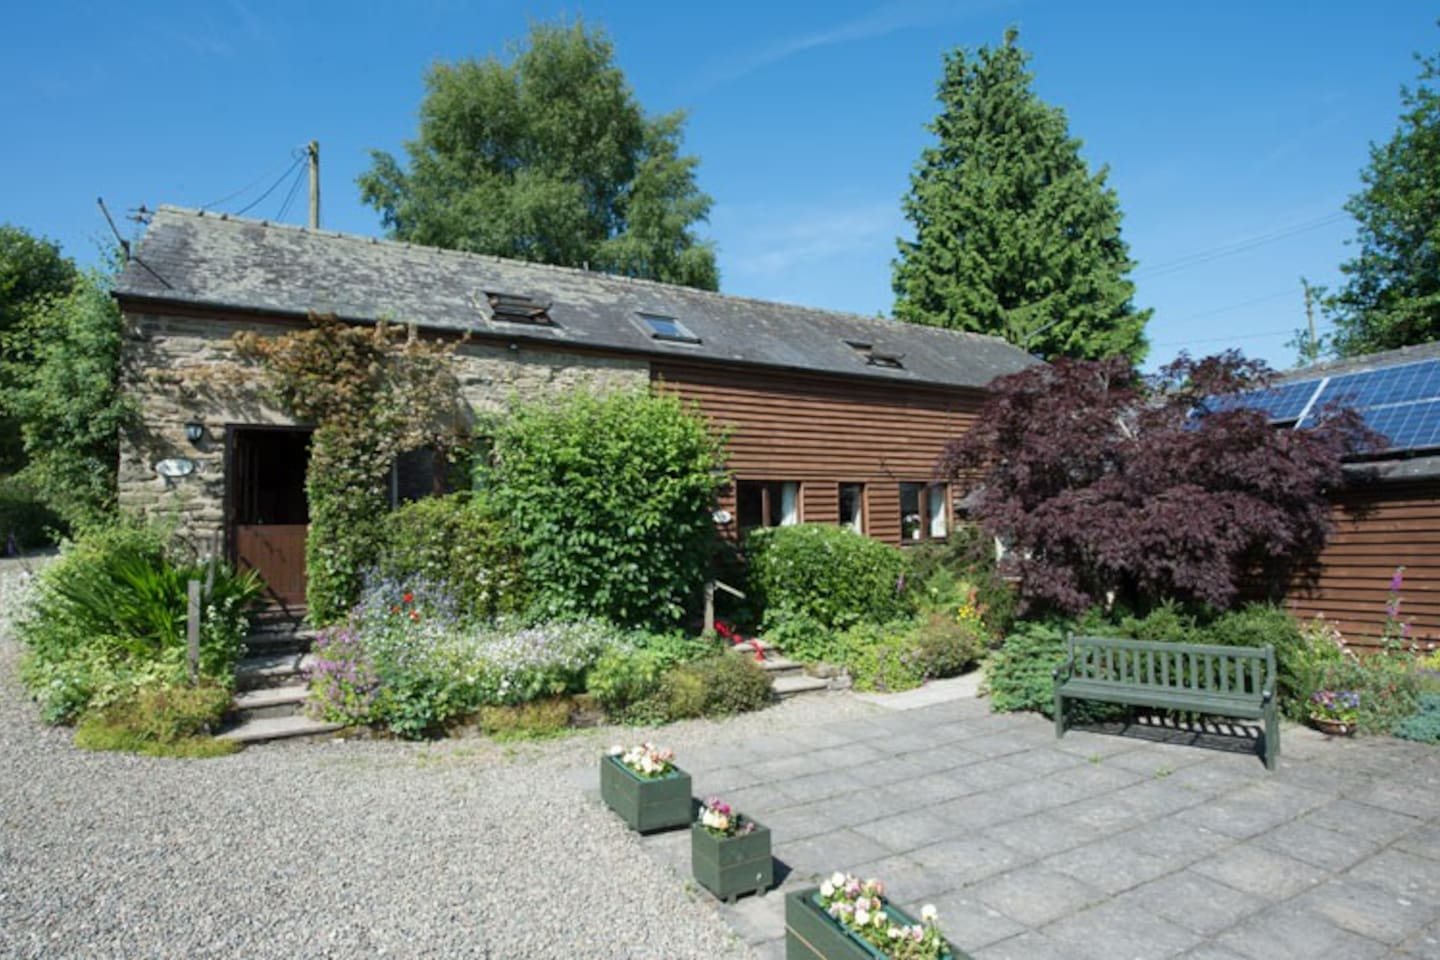 Mocktree Barns Holiday Cottages - South facing courtyard with views over the surrounding countryside.